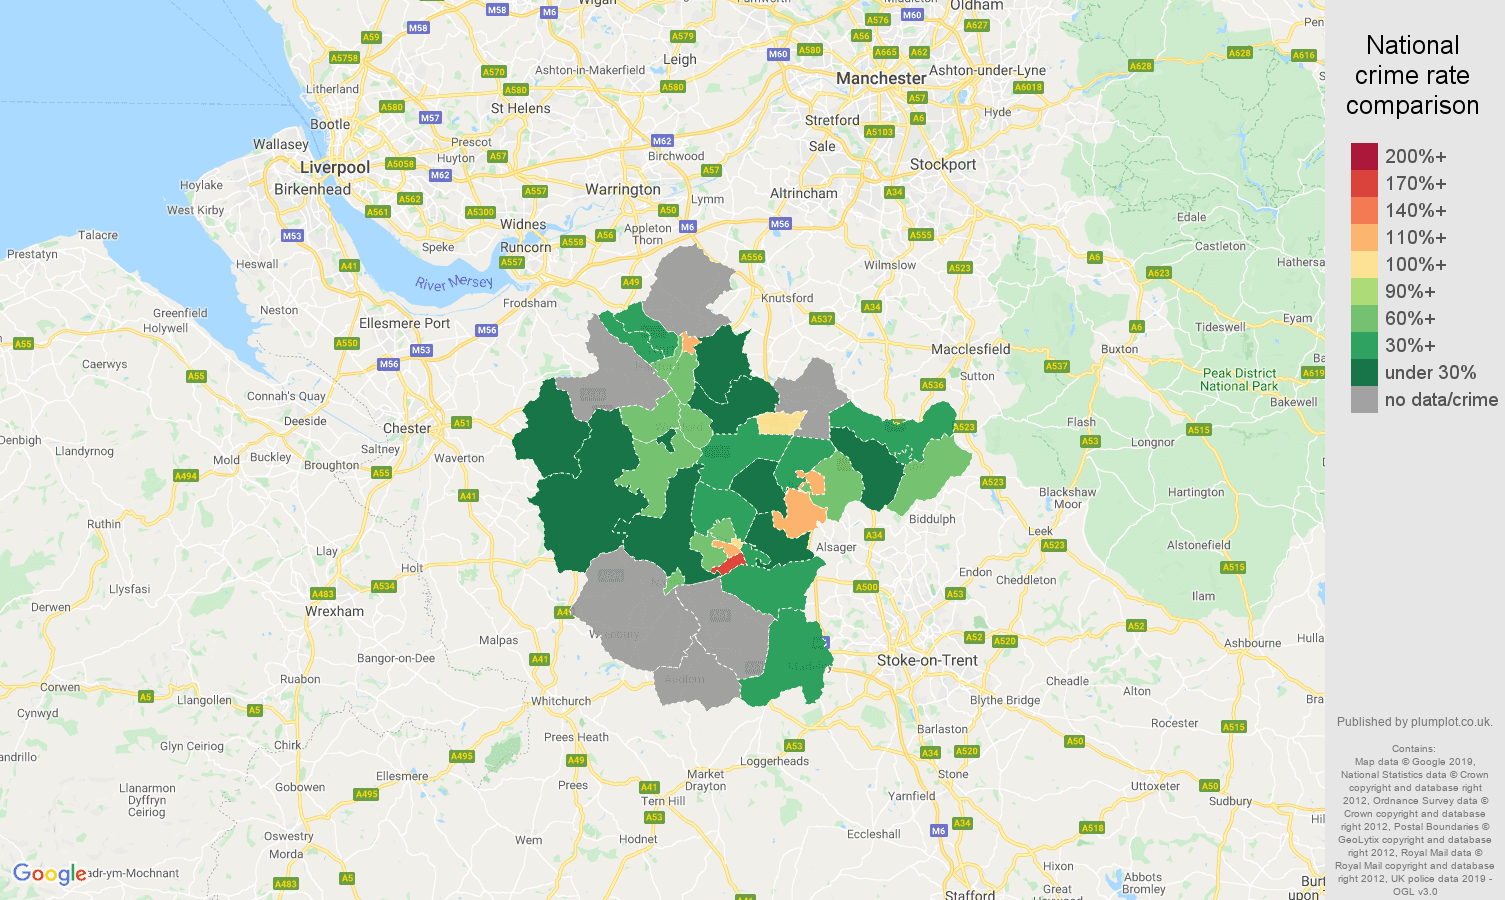 Crewe possession of weapons crime rate comparison map